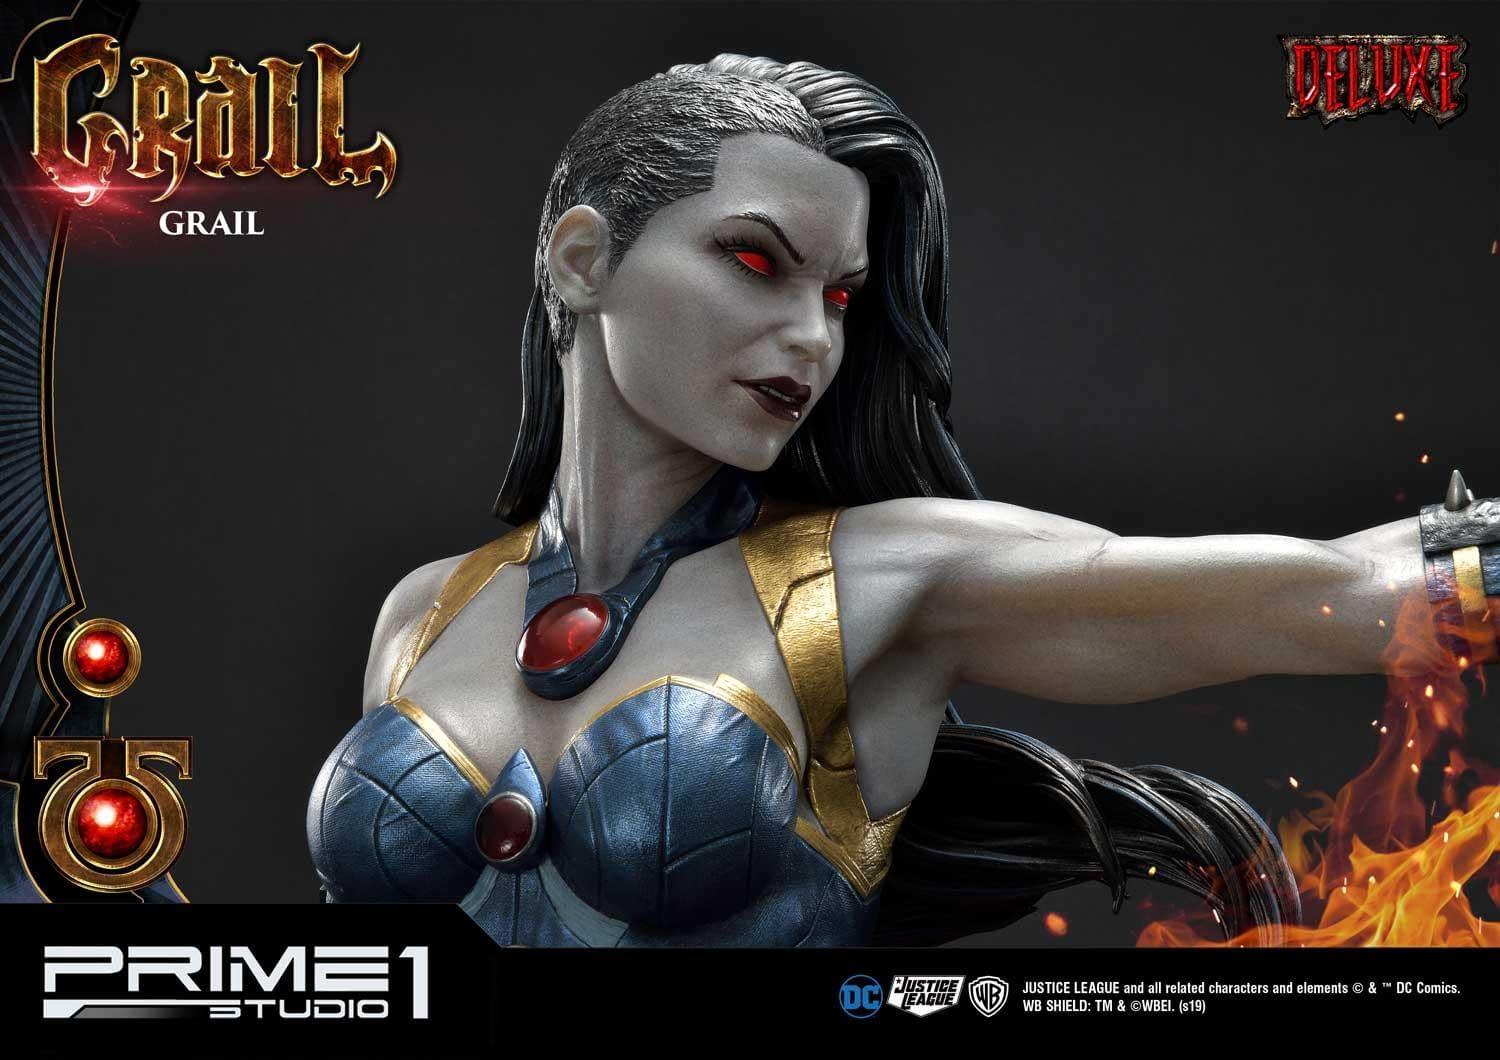 Justice League's Grail Gets Her Own Statue from Prime 1 Studio